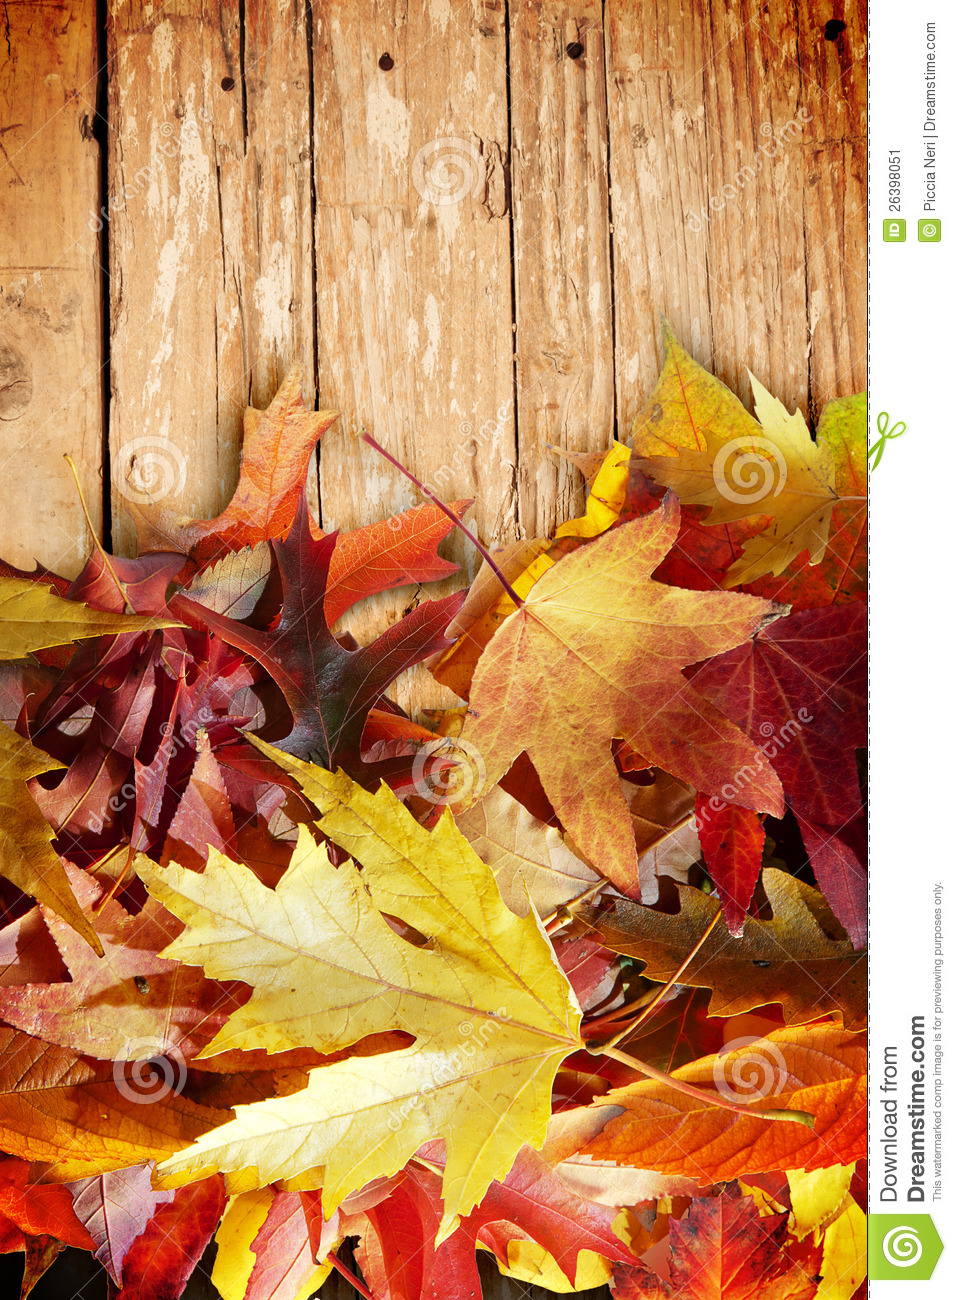 Fall Wooden Wallpaper Autumn Leaves On Wood Stock Image Image 26398051